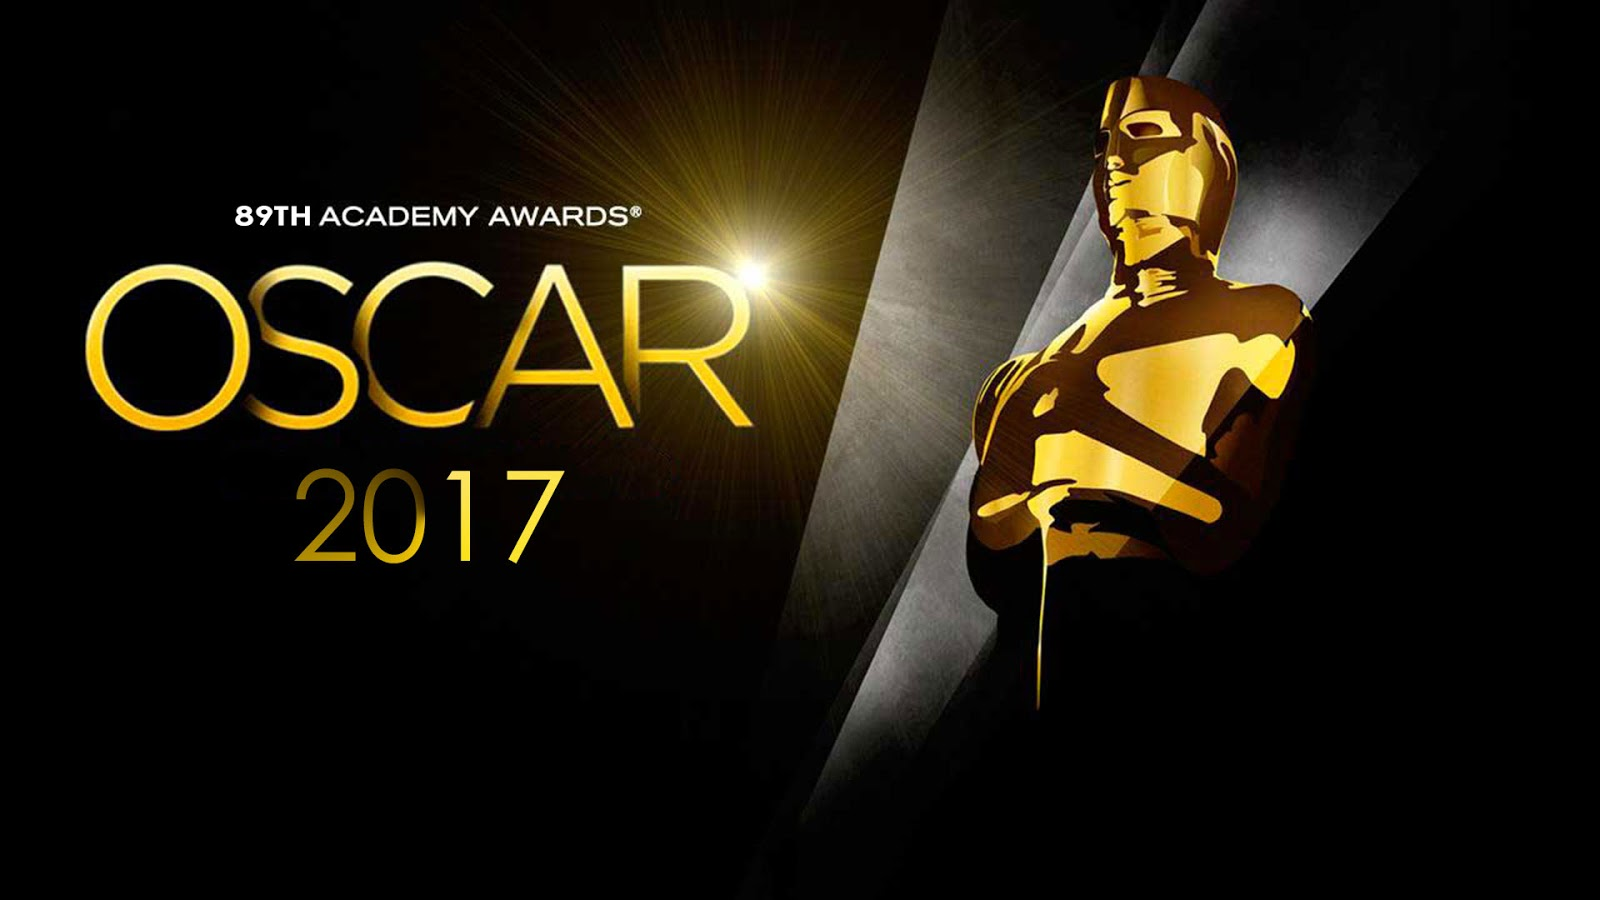 2017-oscars-89th-academy-awards-1